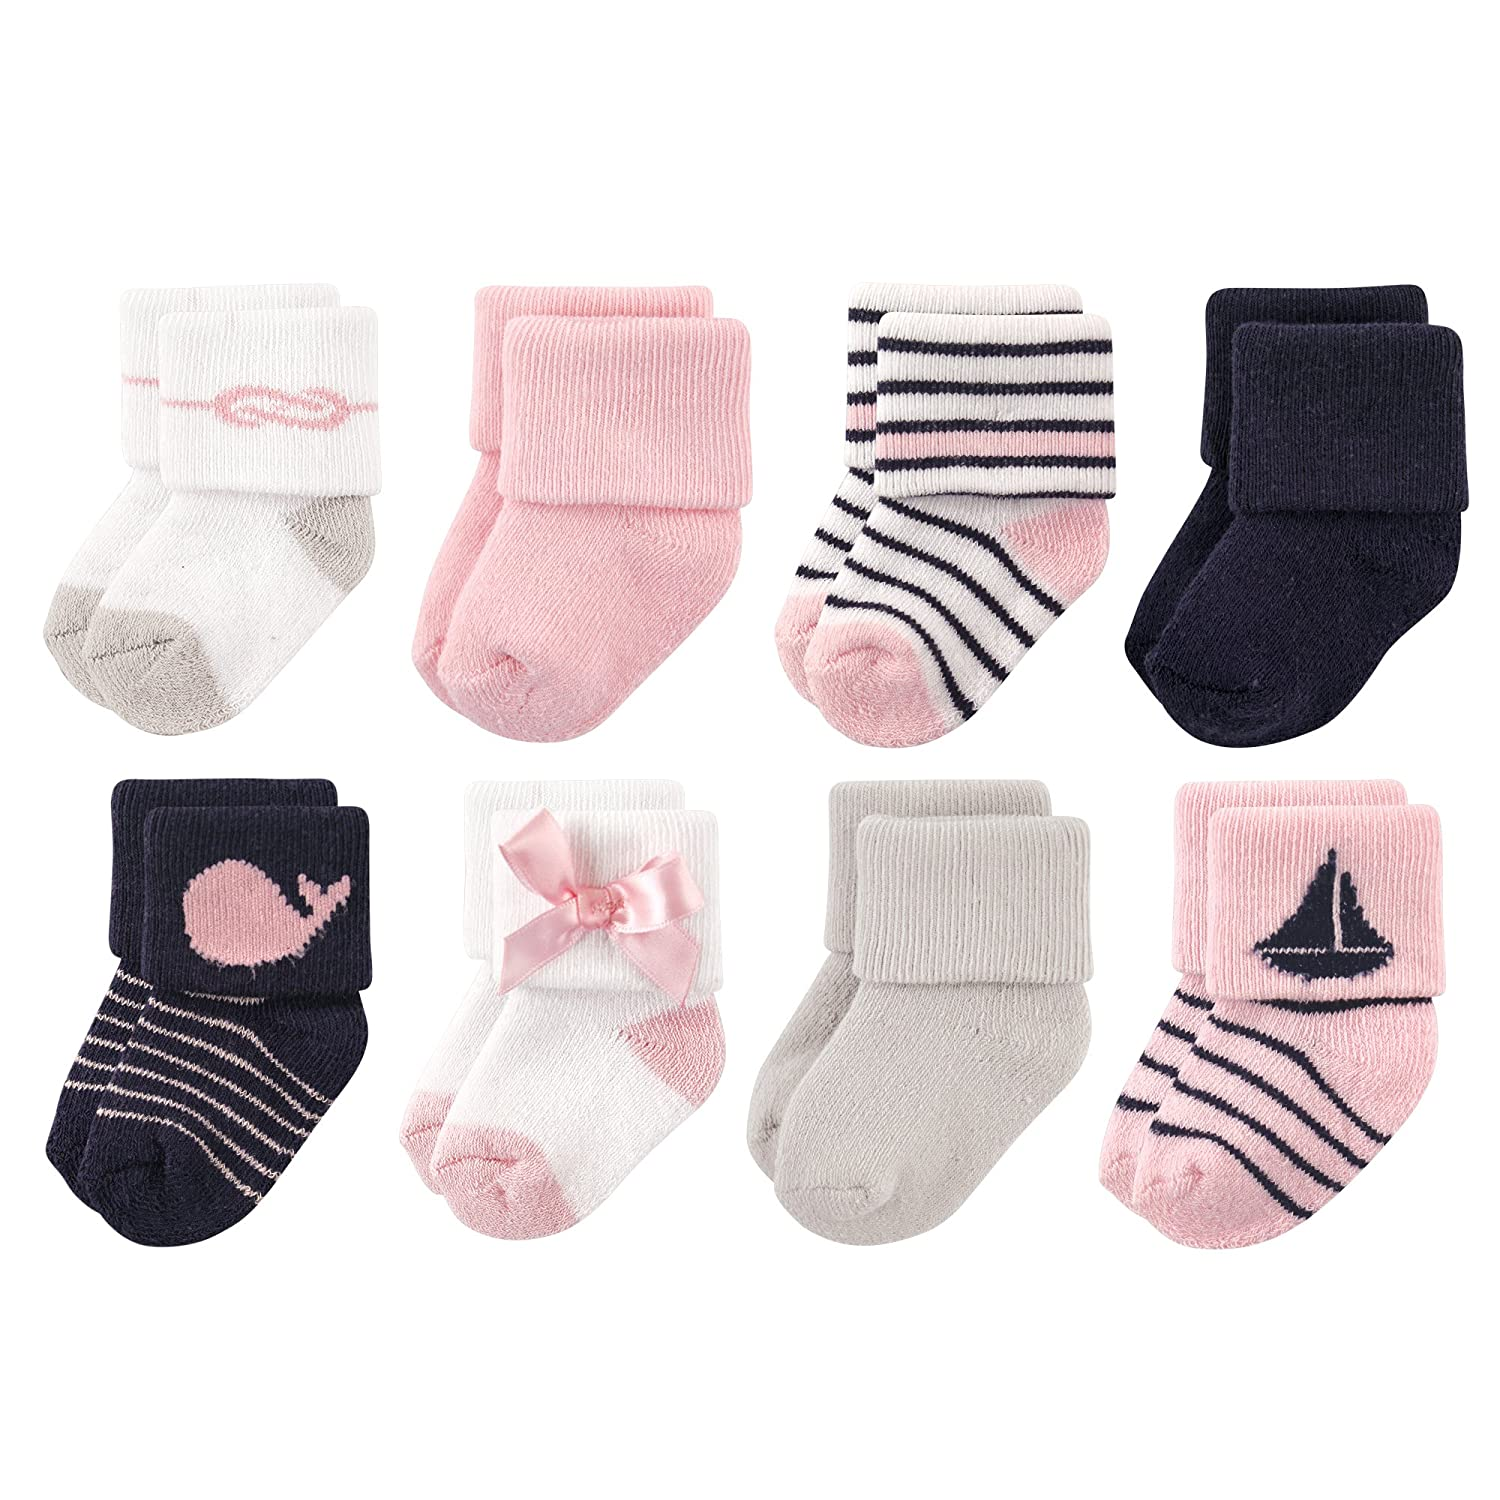 Luvable Friends Unisex Baby Socks